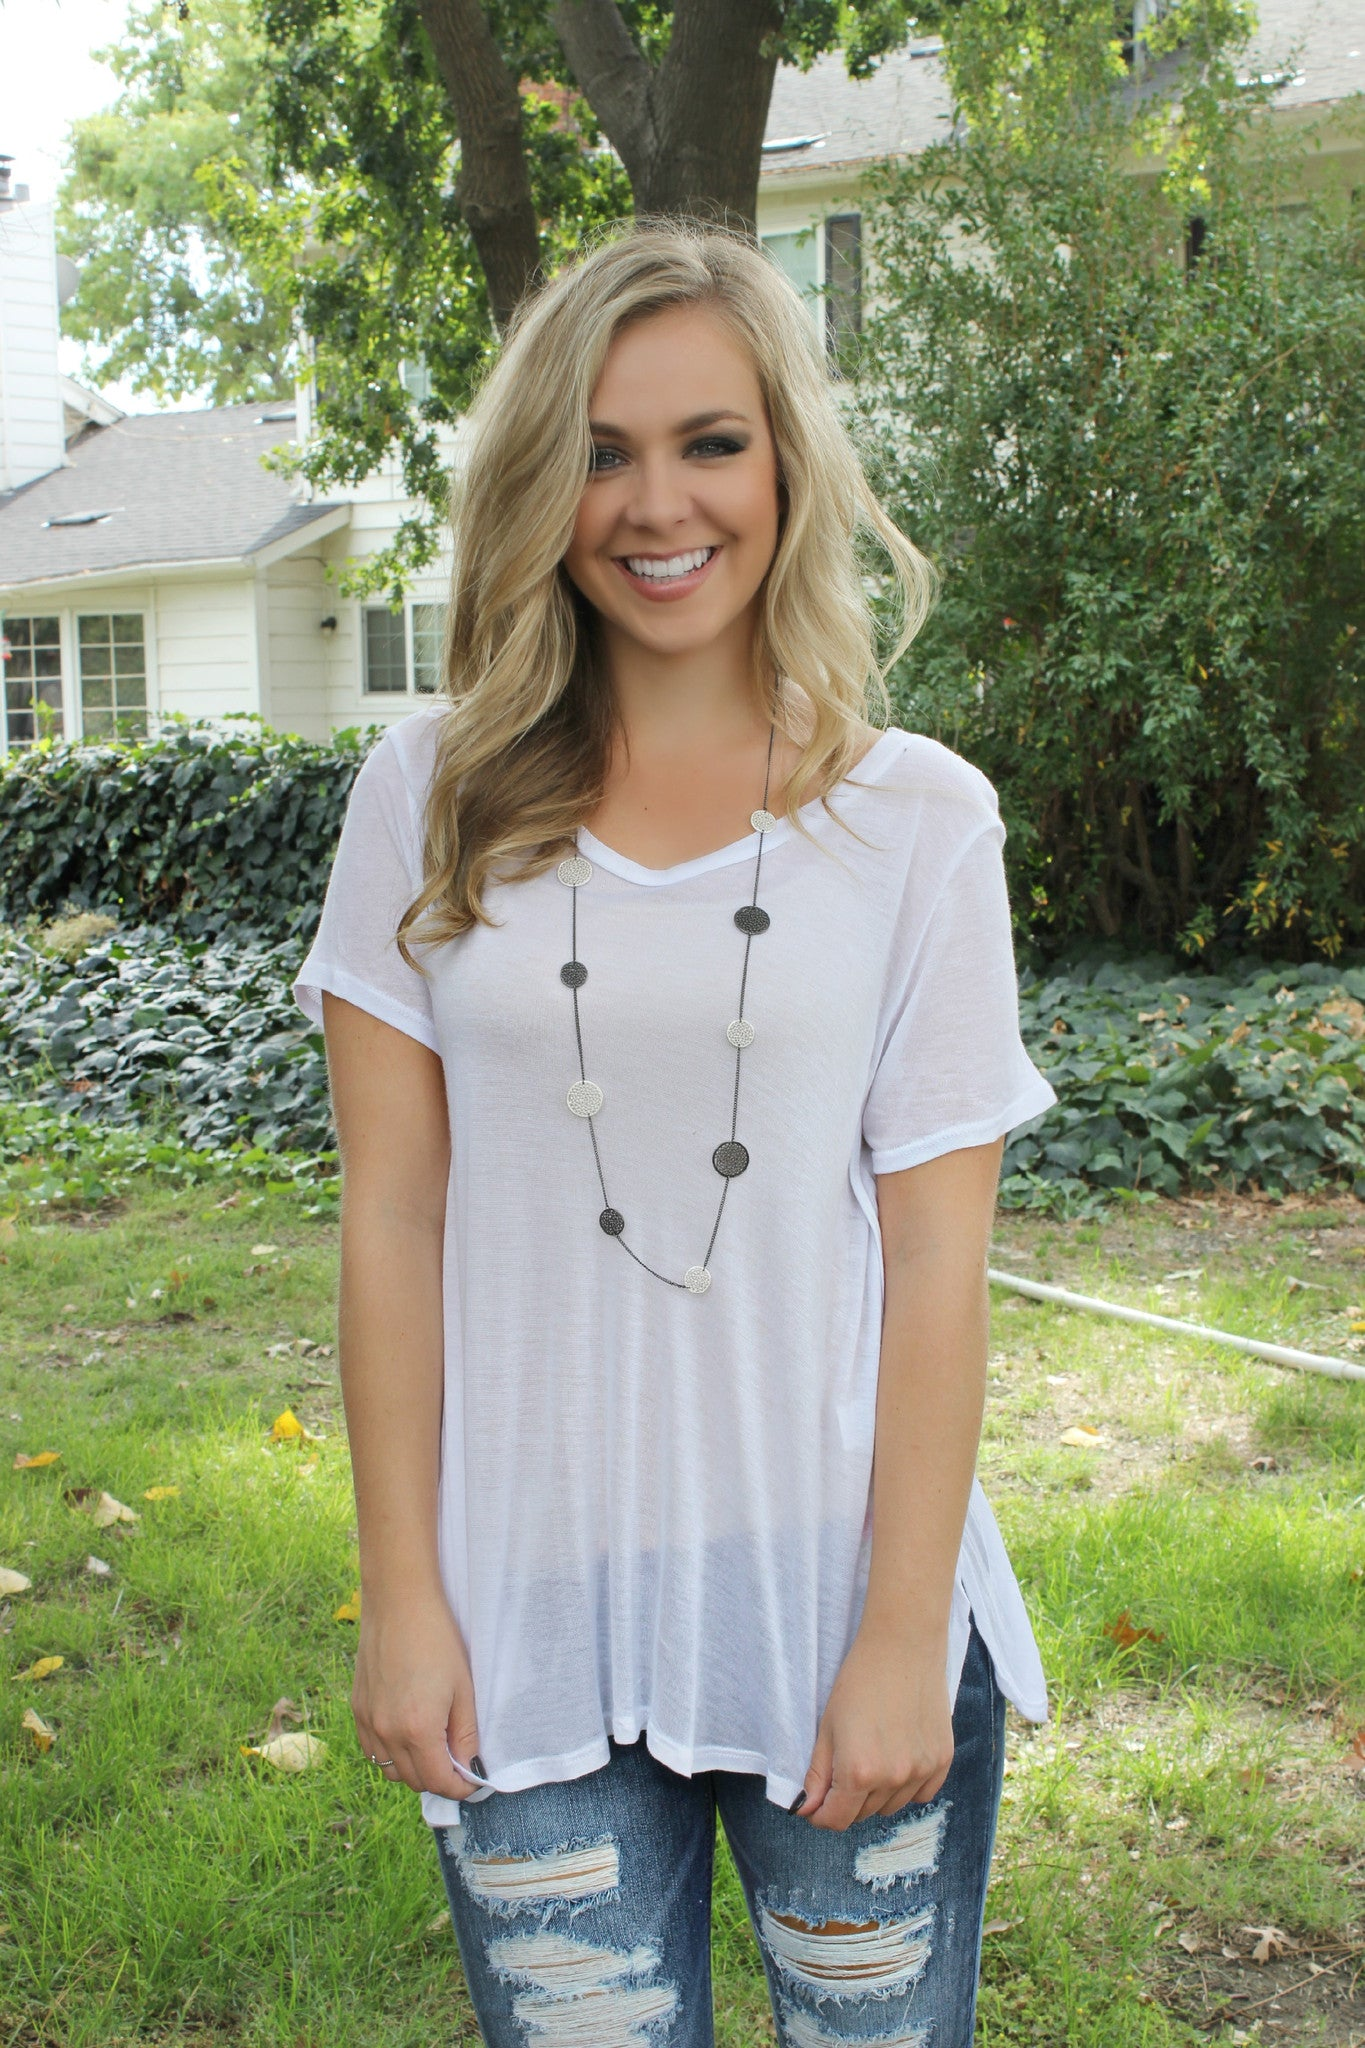 Who's With Me Blouse - Leah B. Boutique